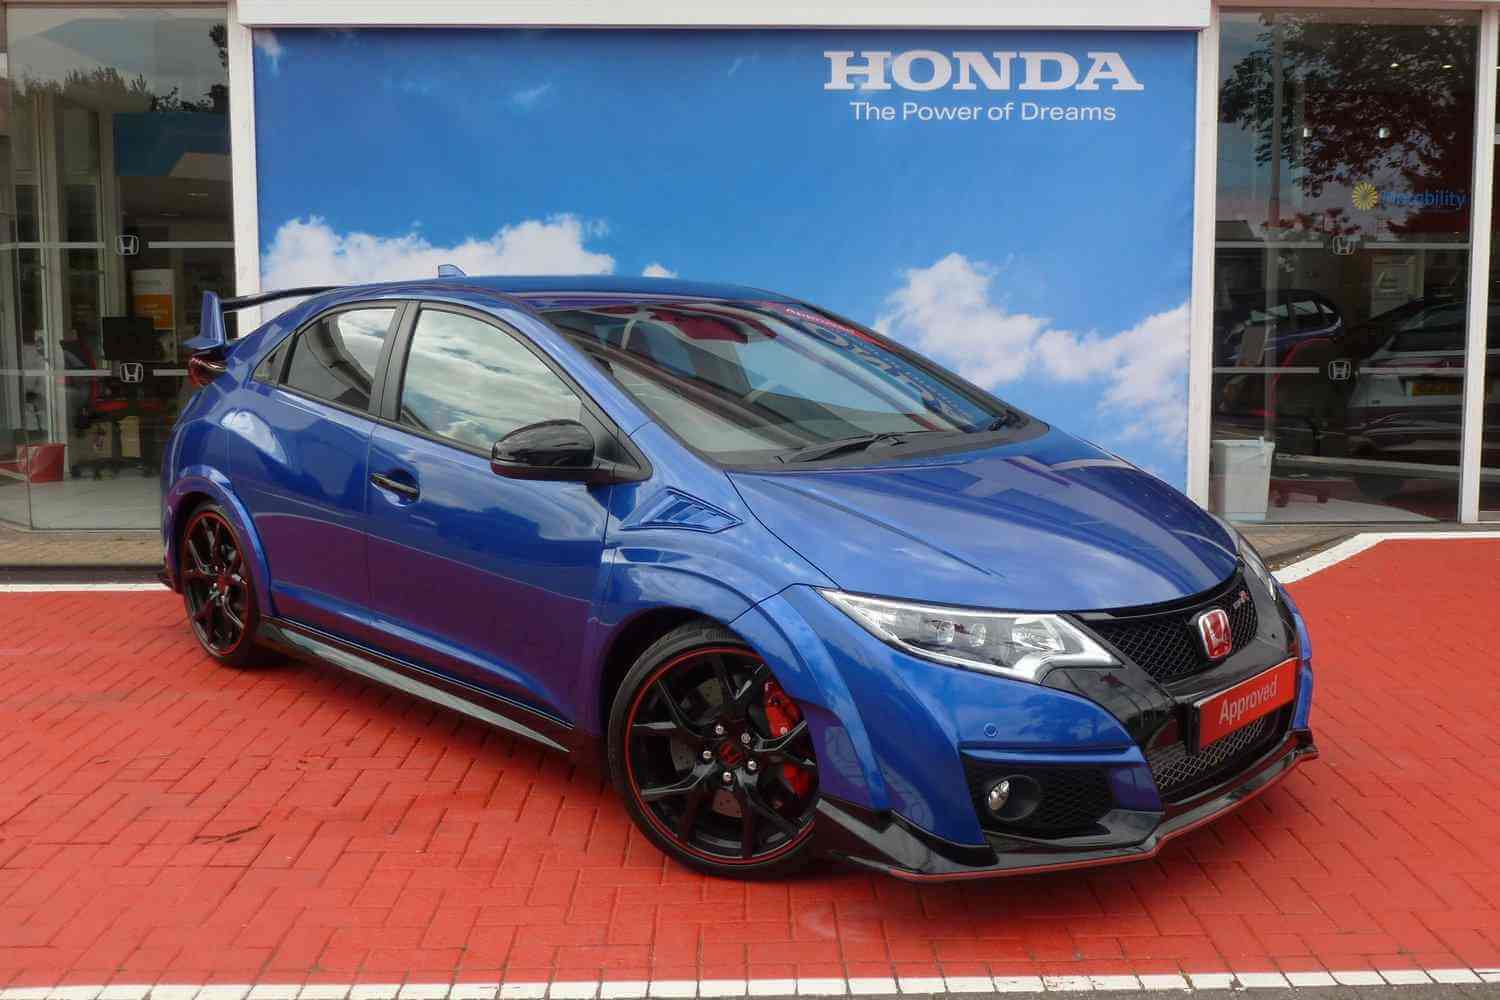 34 All New Honda Sonic 2020 Specs and Review for Honda Sonic 2020